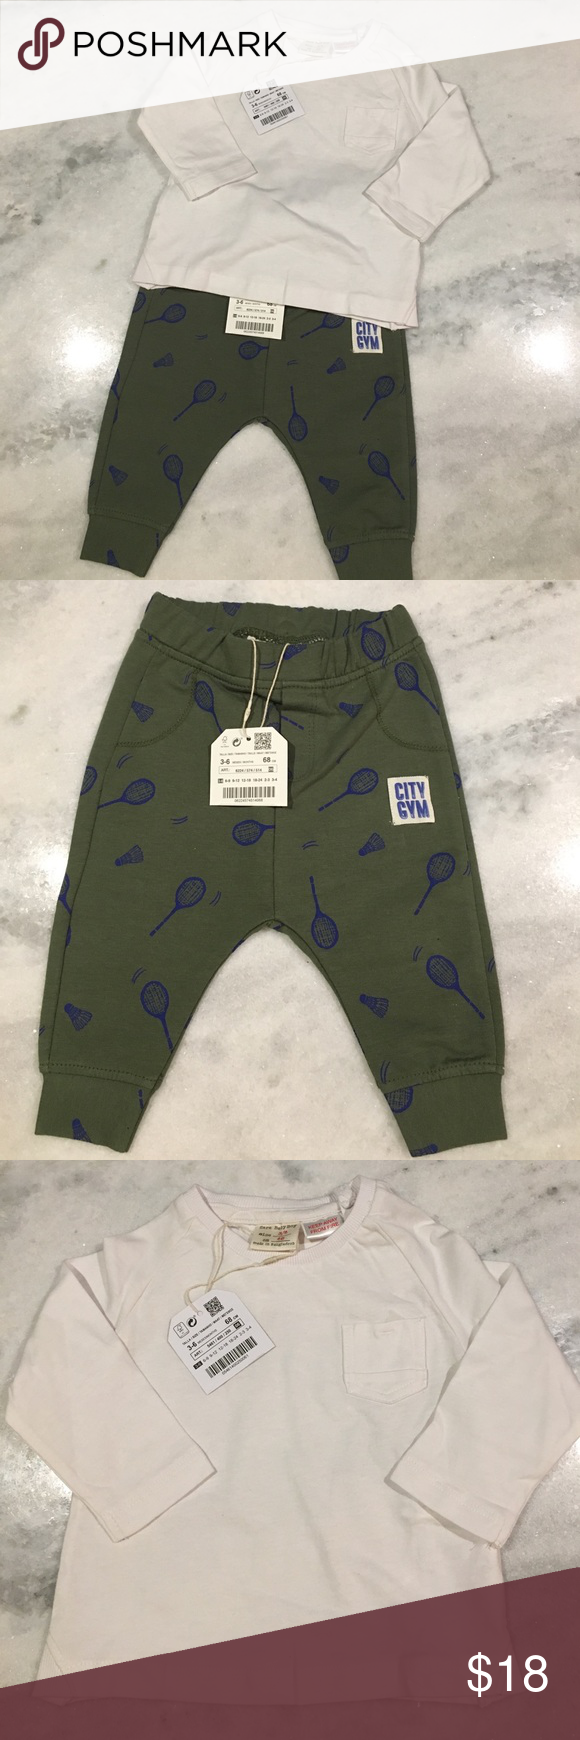 NWT • Zara Baby Boy Racket Set • 3-6months • New with Tags ...